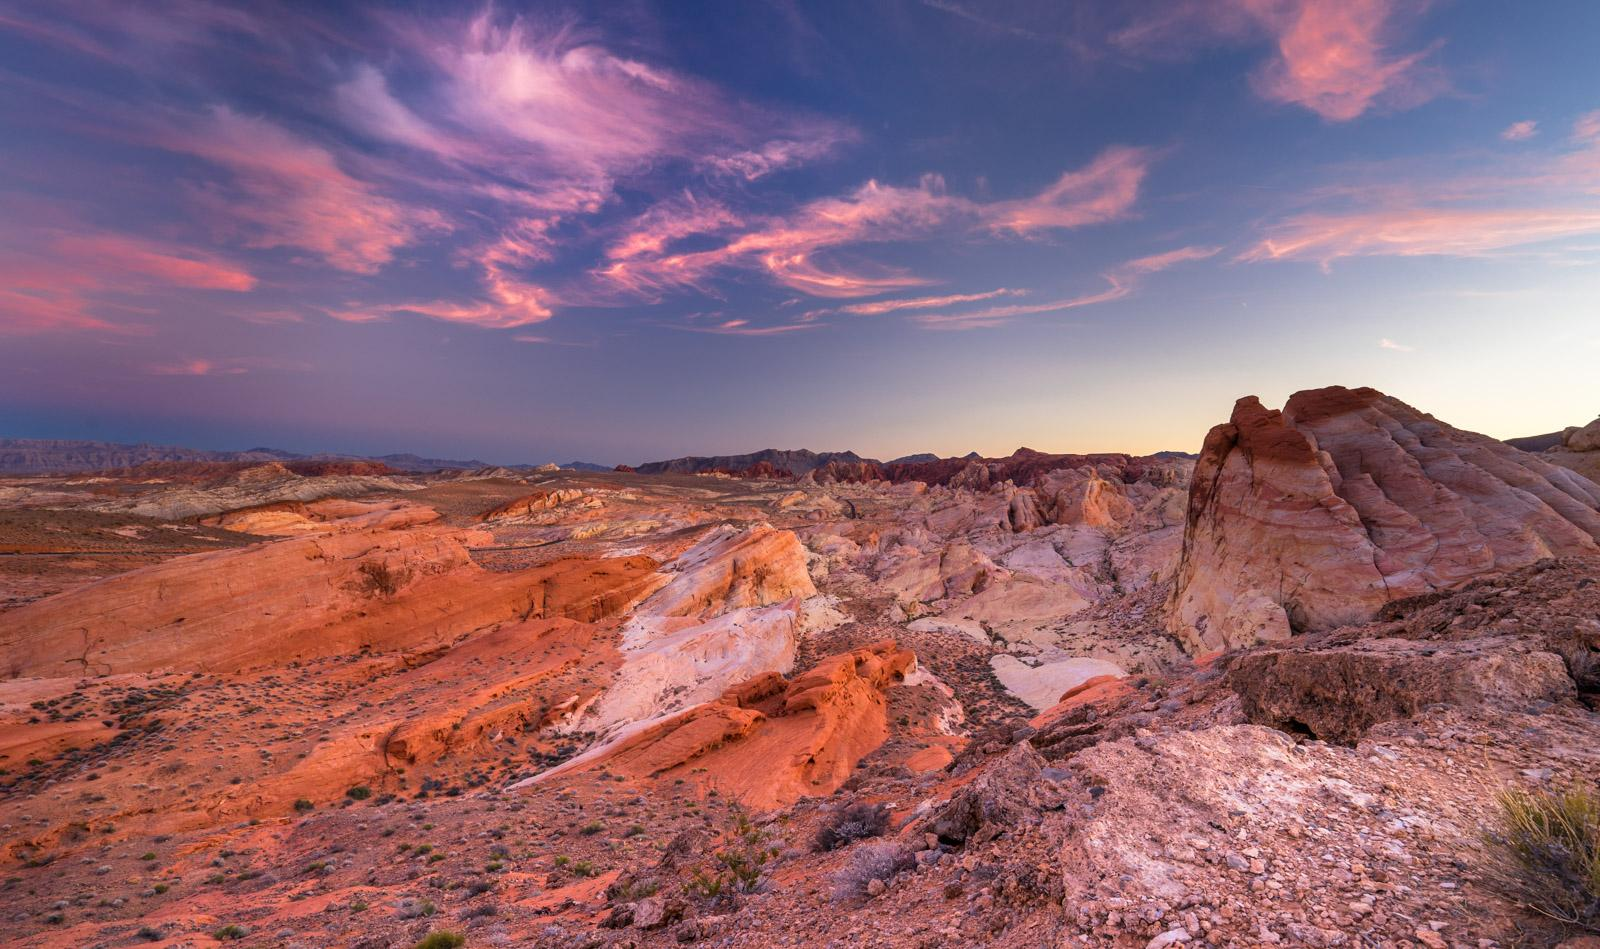 Sonnenuntergang im Valley of Fire